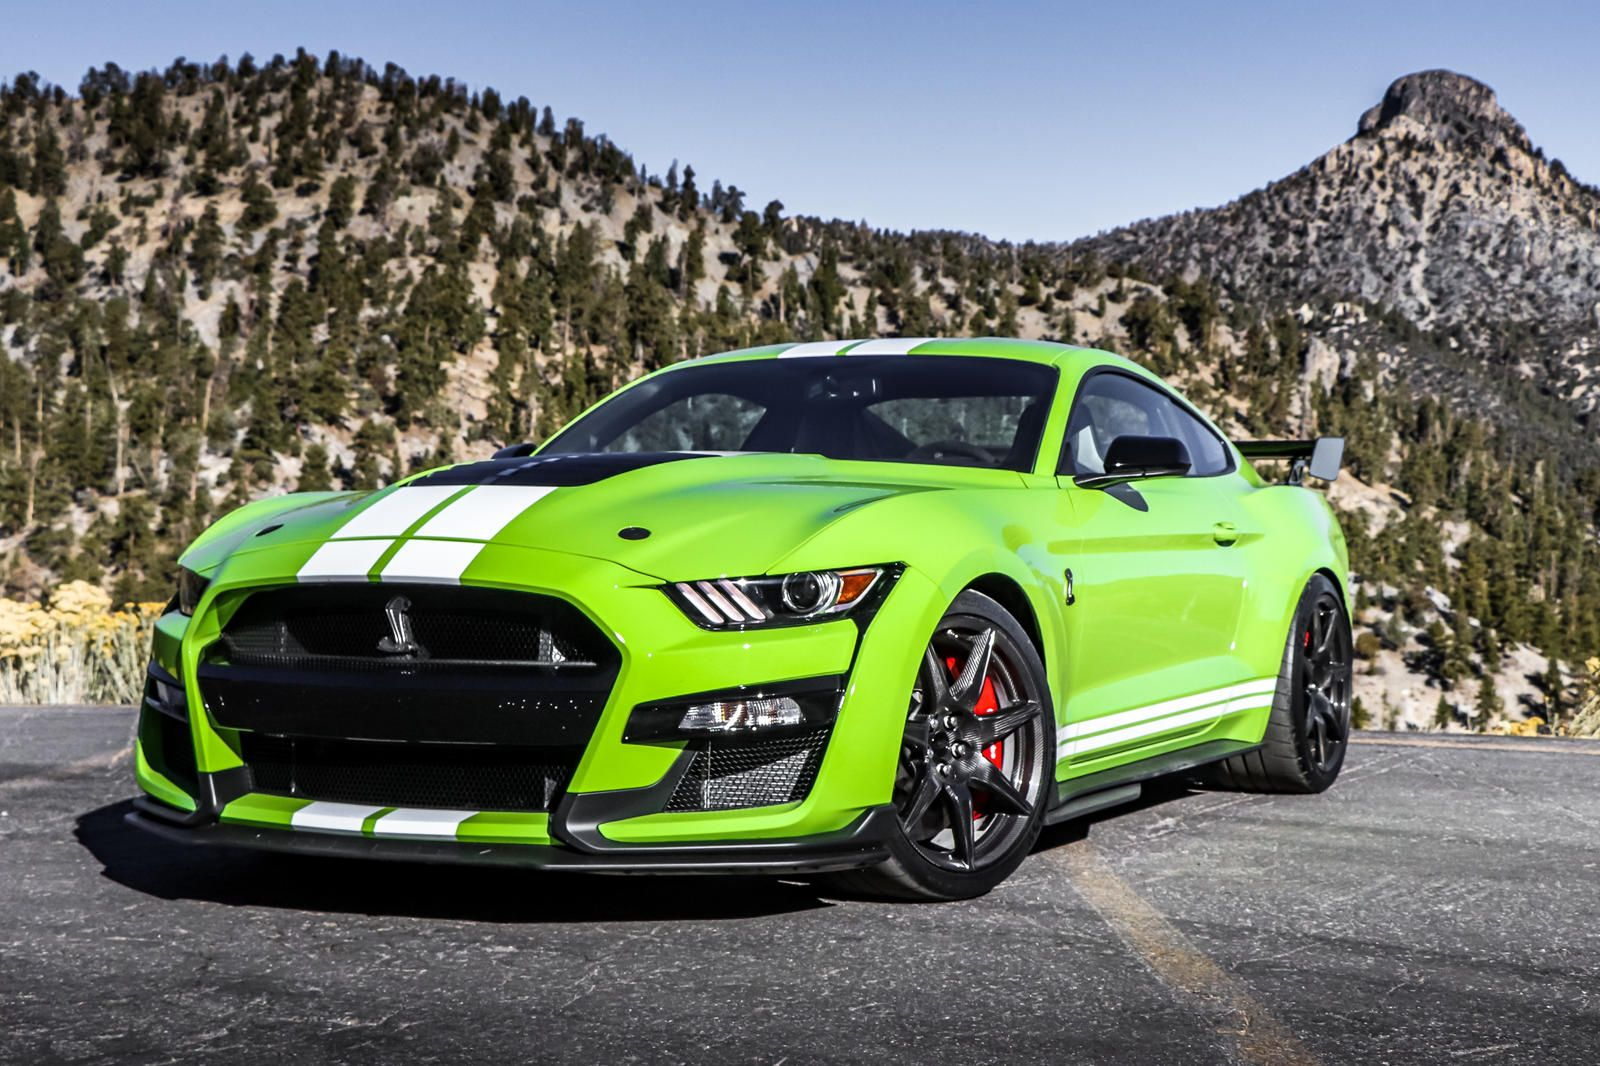 2020 Ford Mustang Shelby GT500 Review, Trims, Specs and